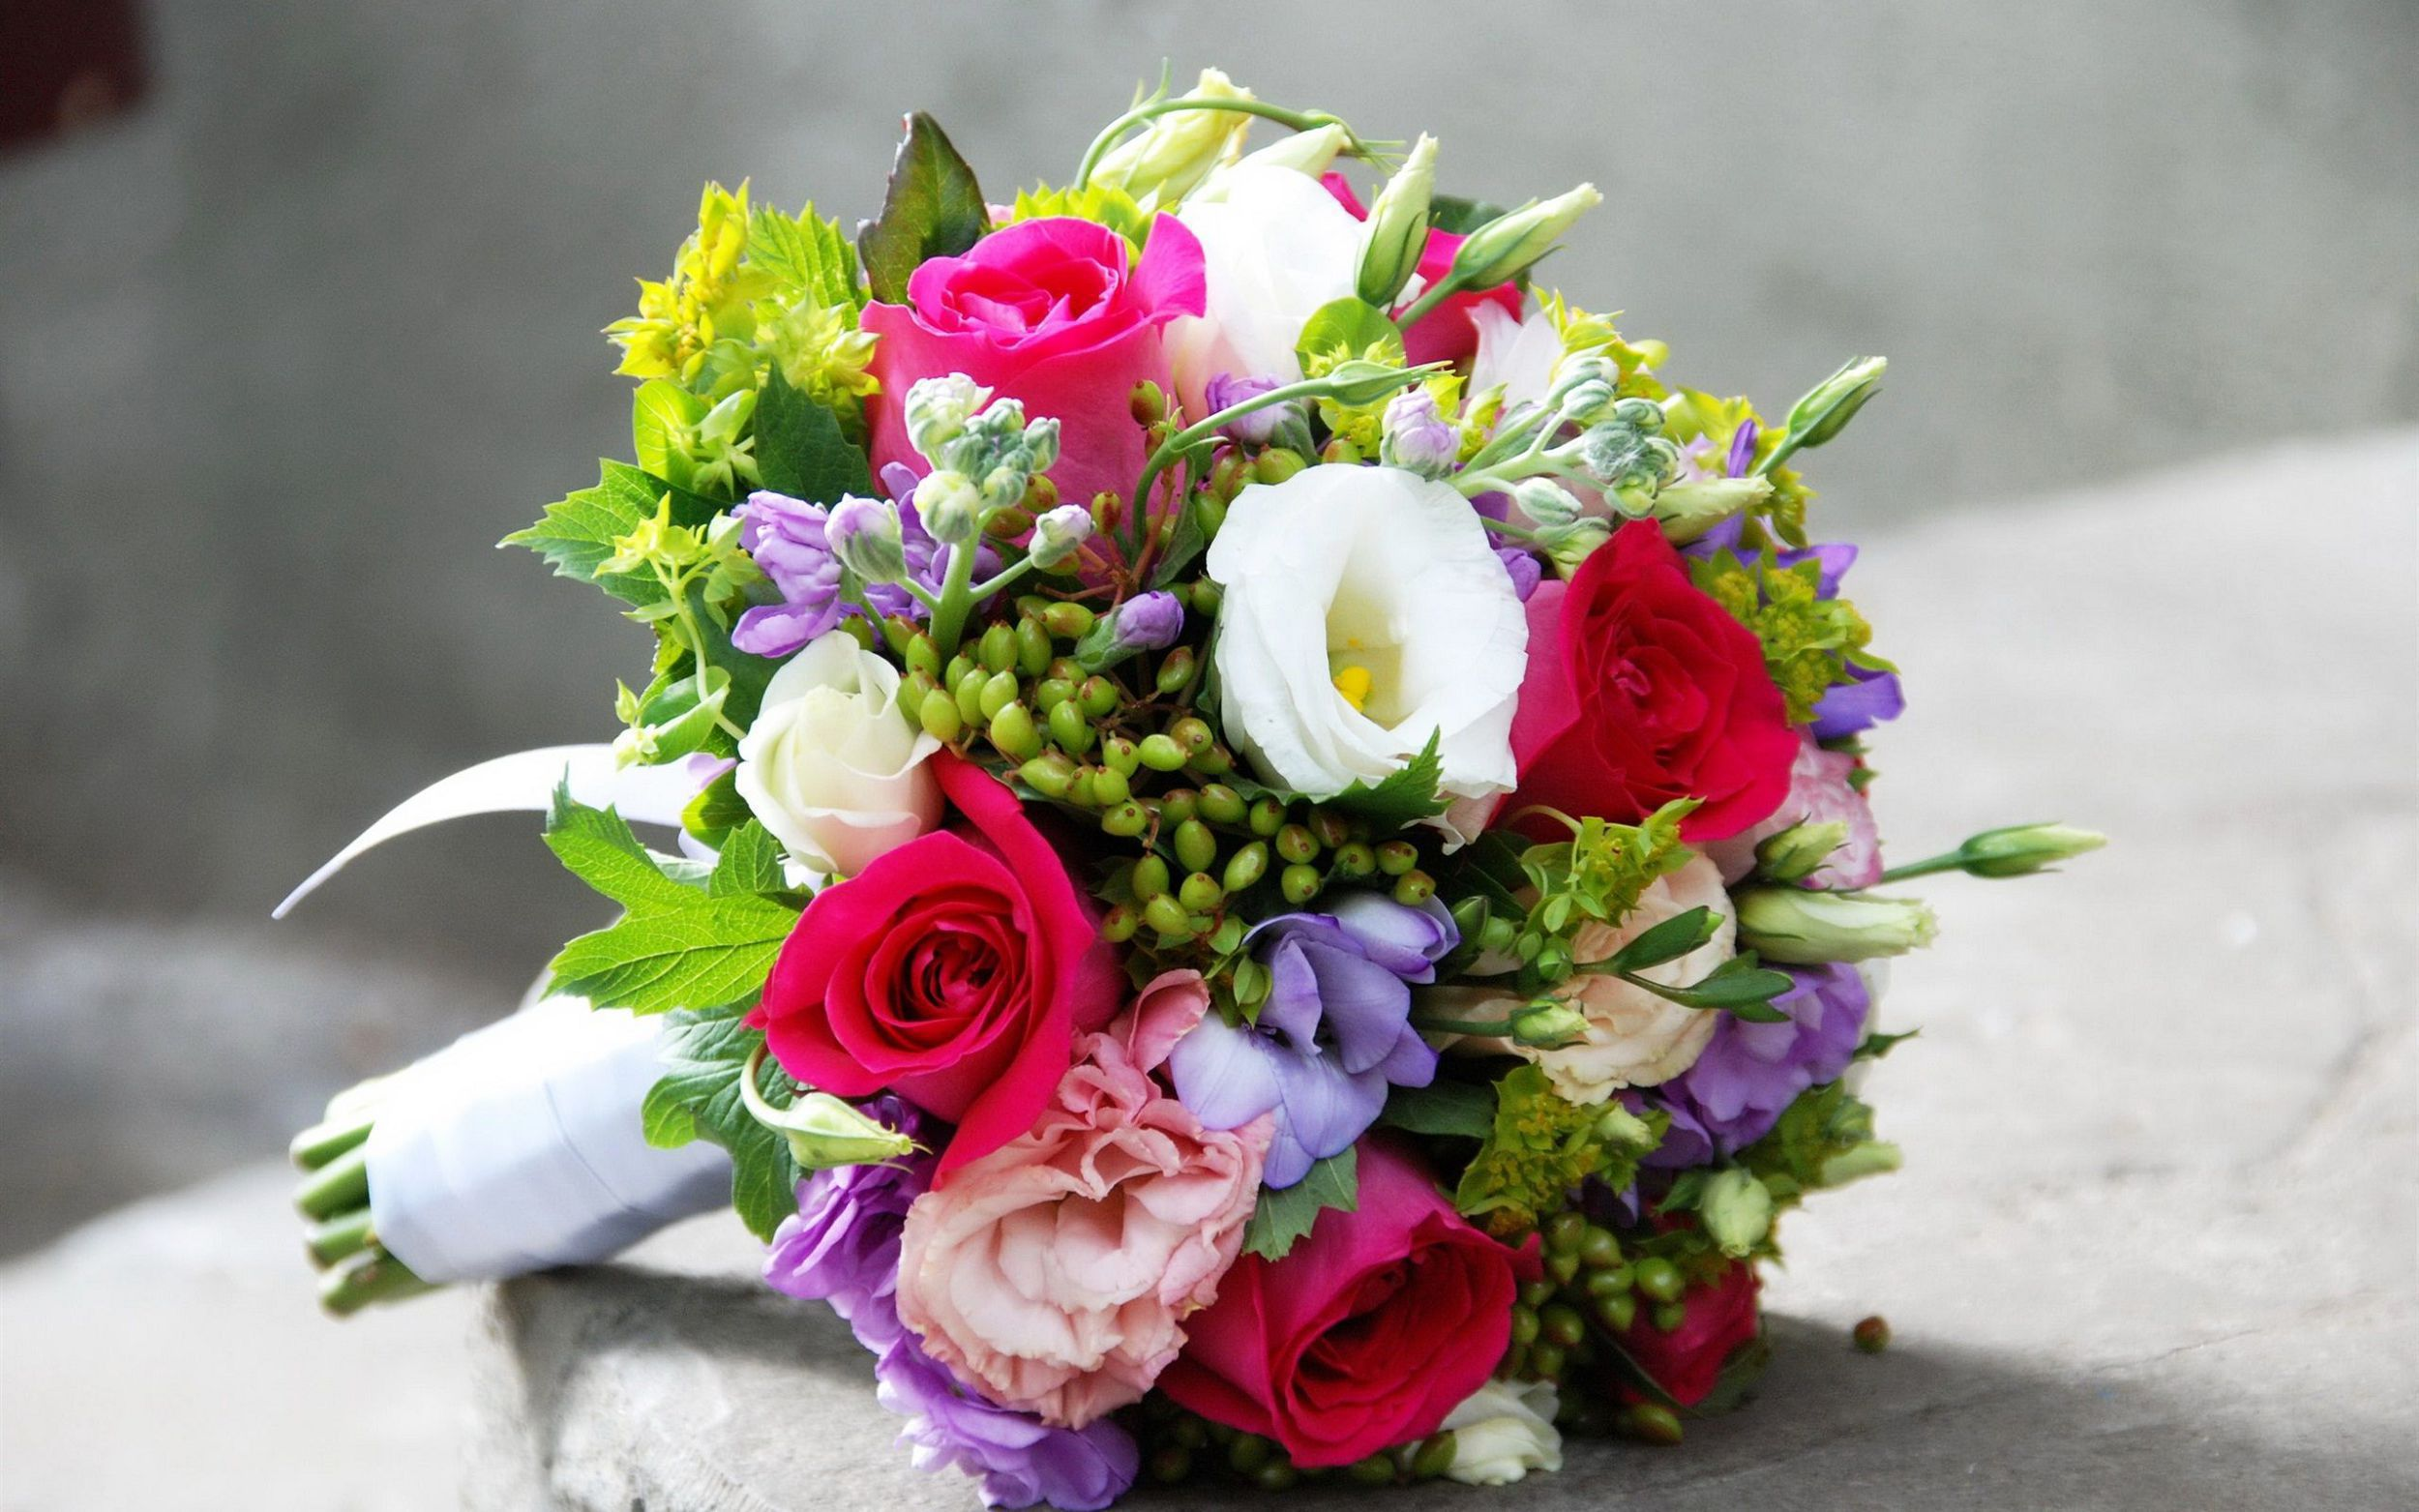 Bouquet Of Flowers Images